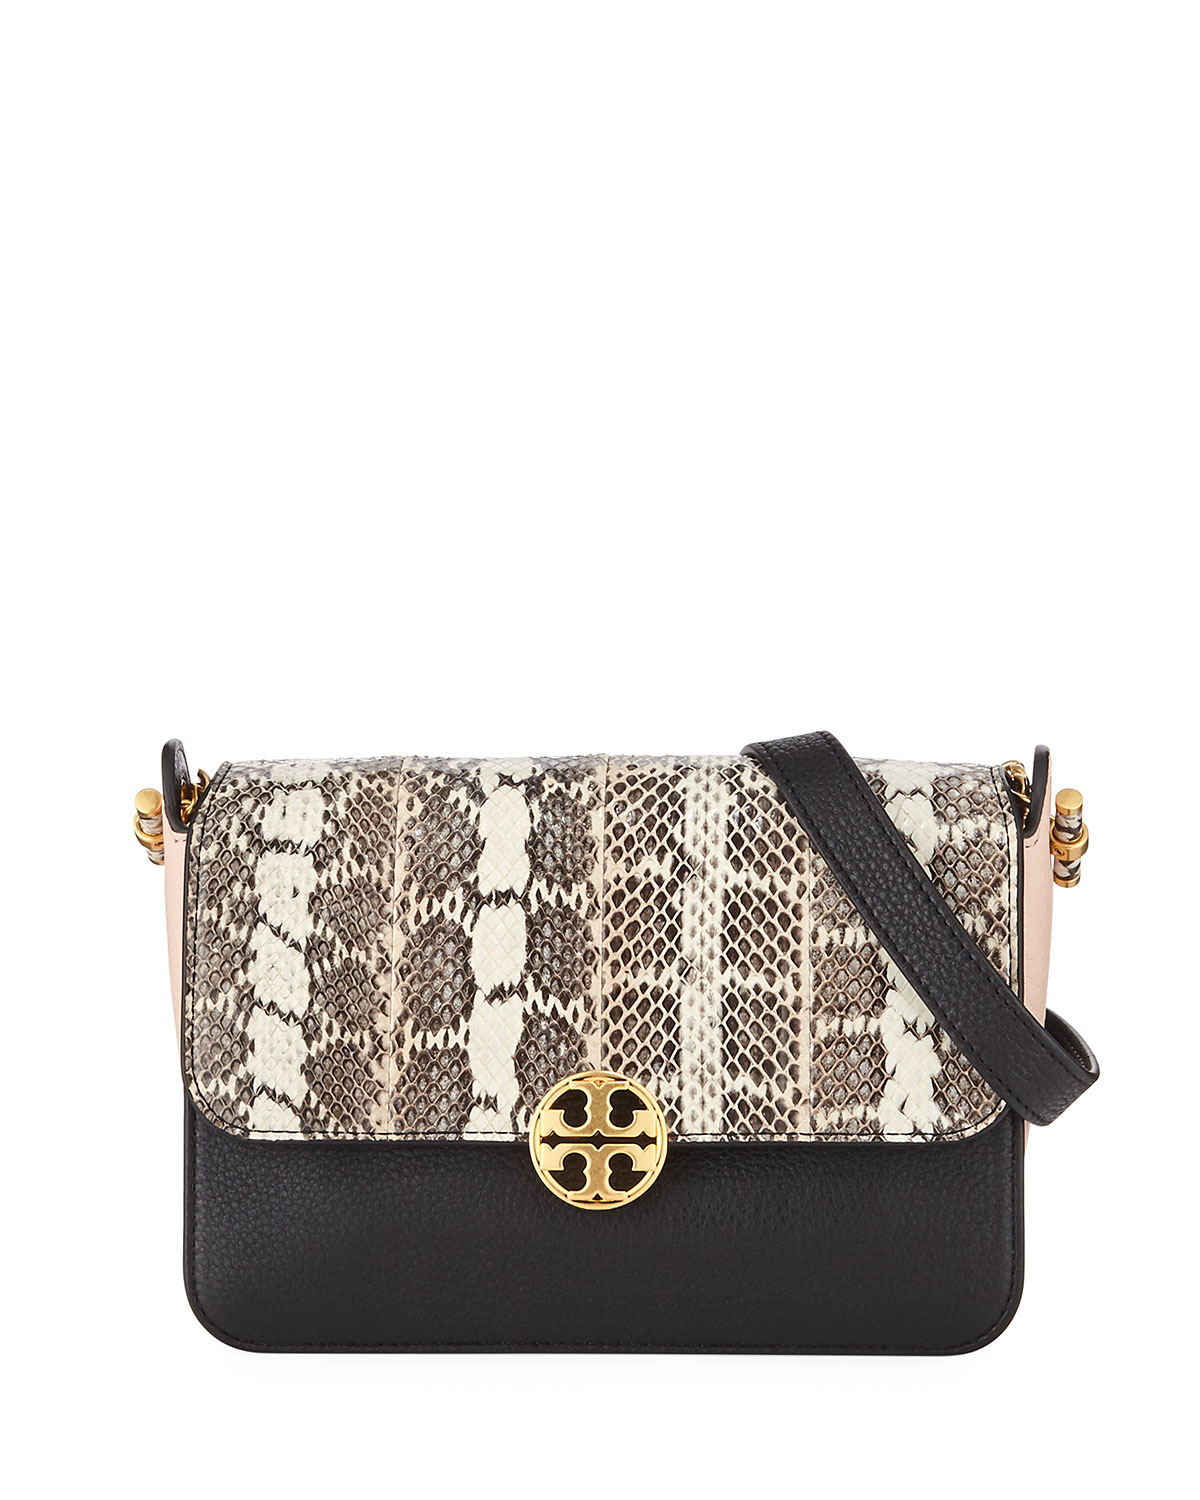 58caa9e536e Tory Burch Chelsea Colorblock Snake Crossbody Bag